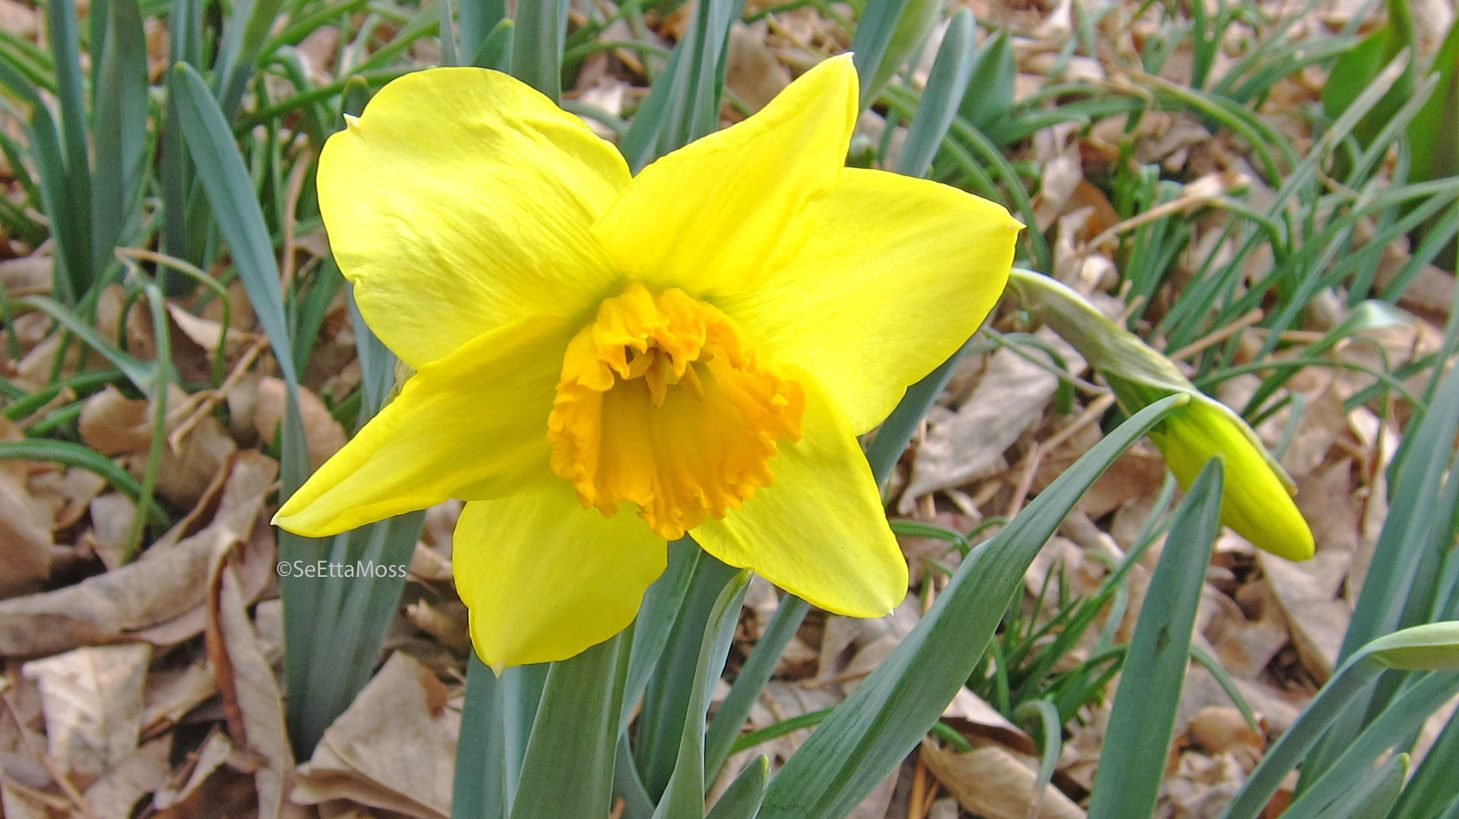 Daffodils narcissus or jonquils Birds and Blooms